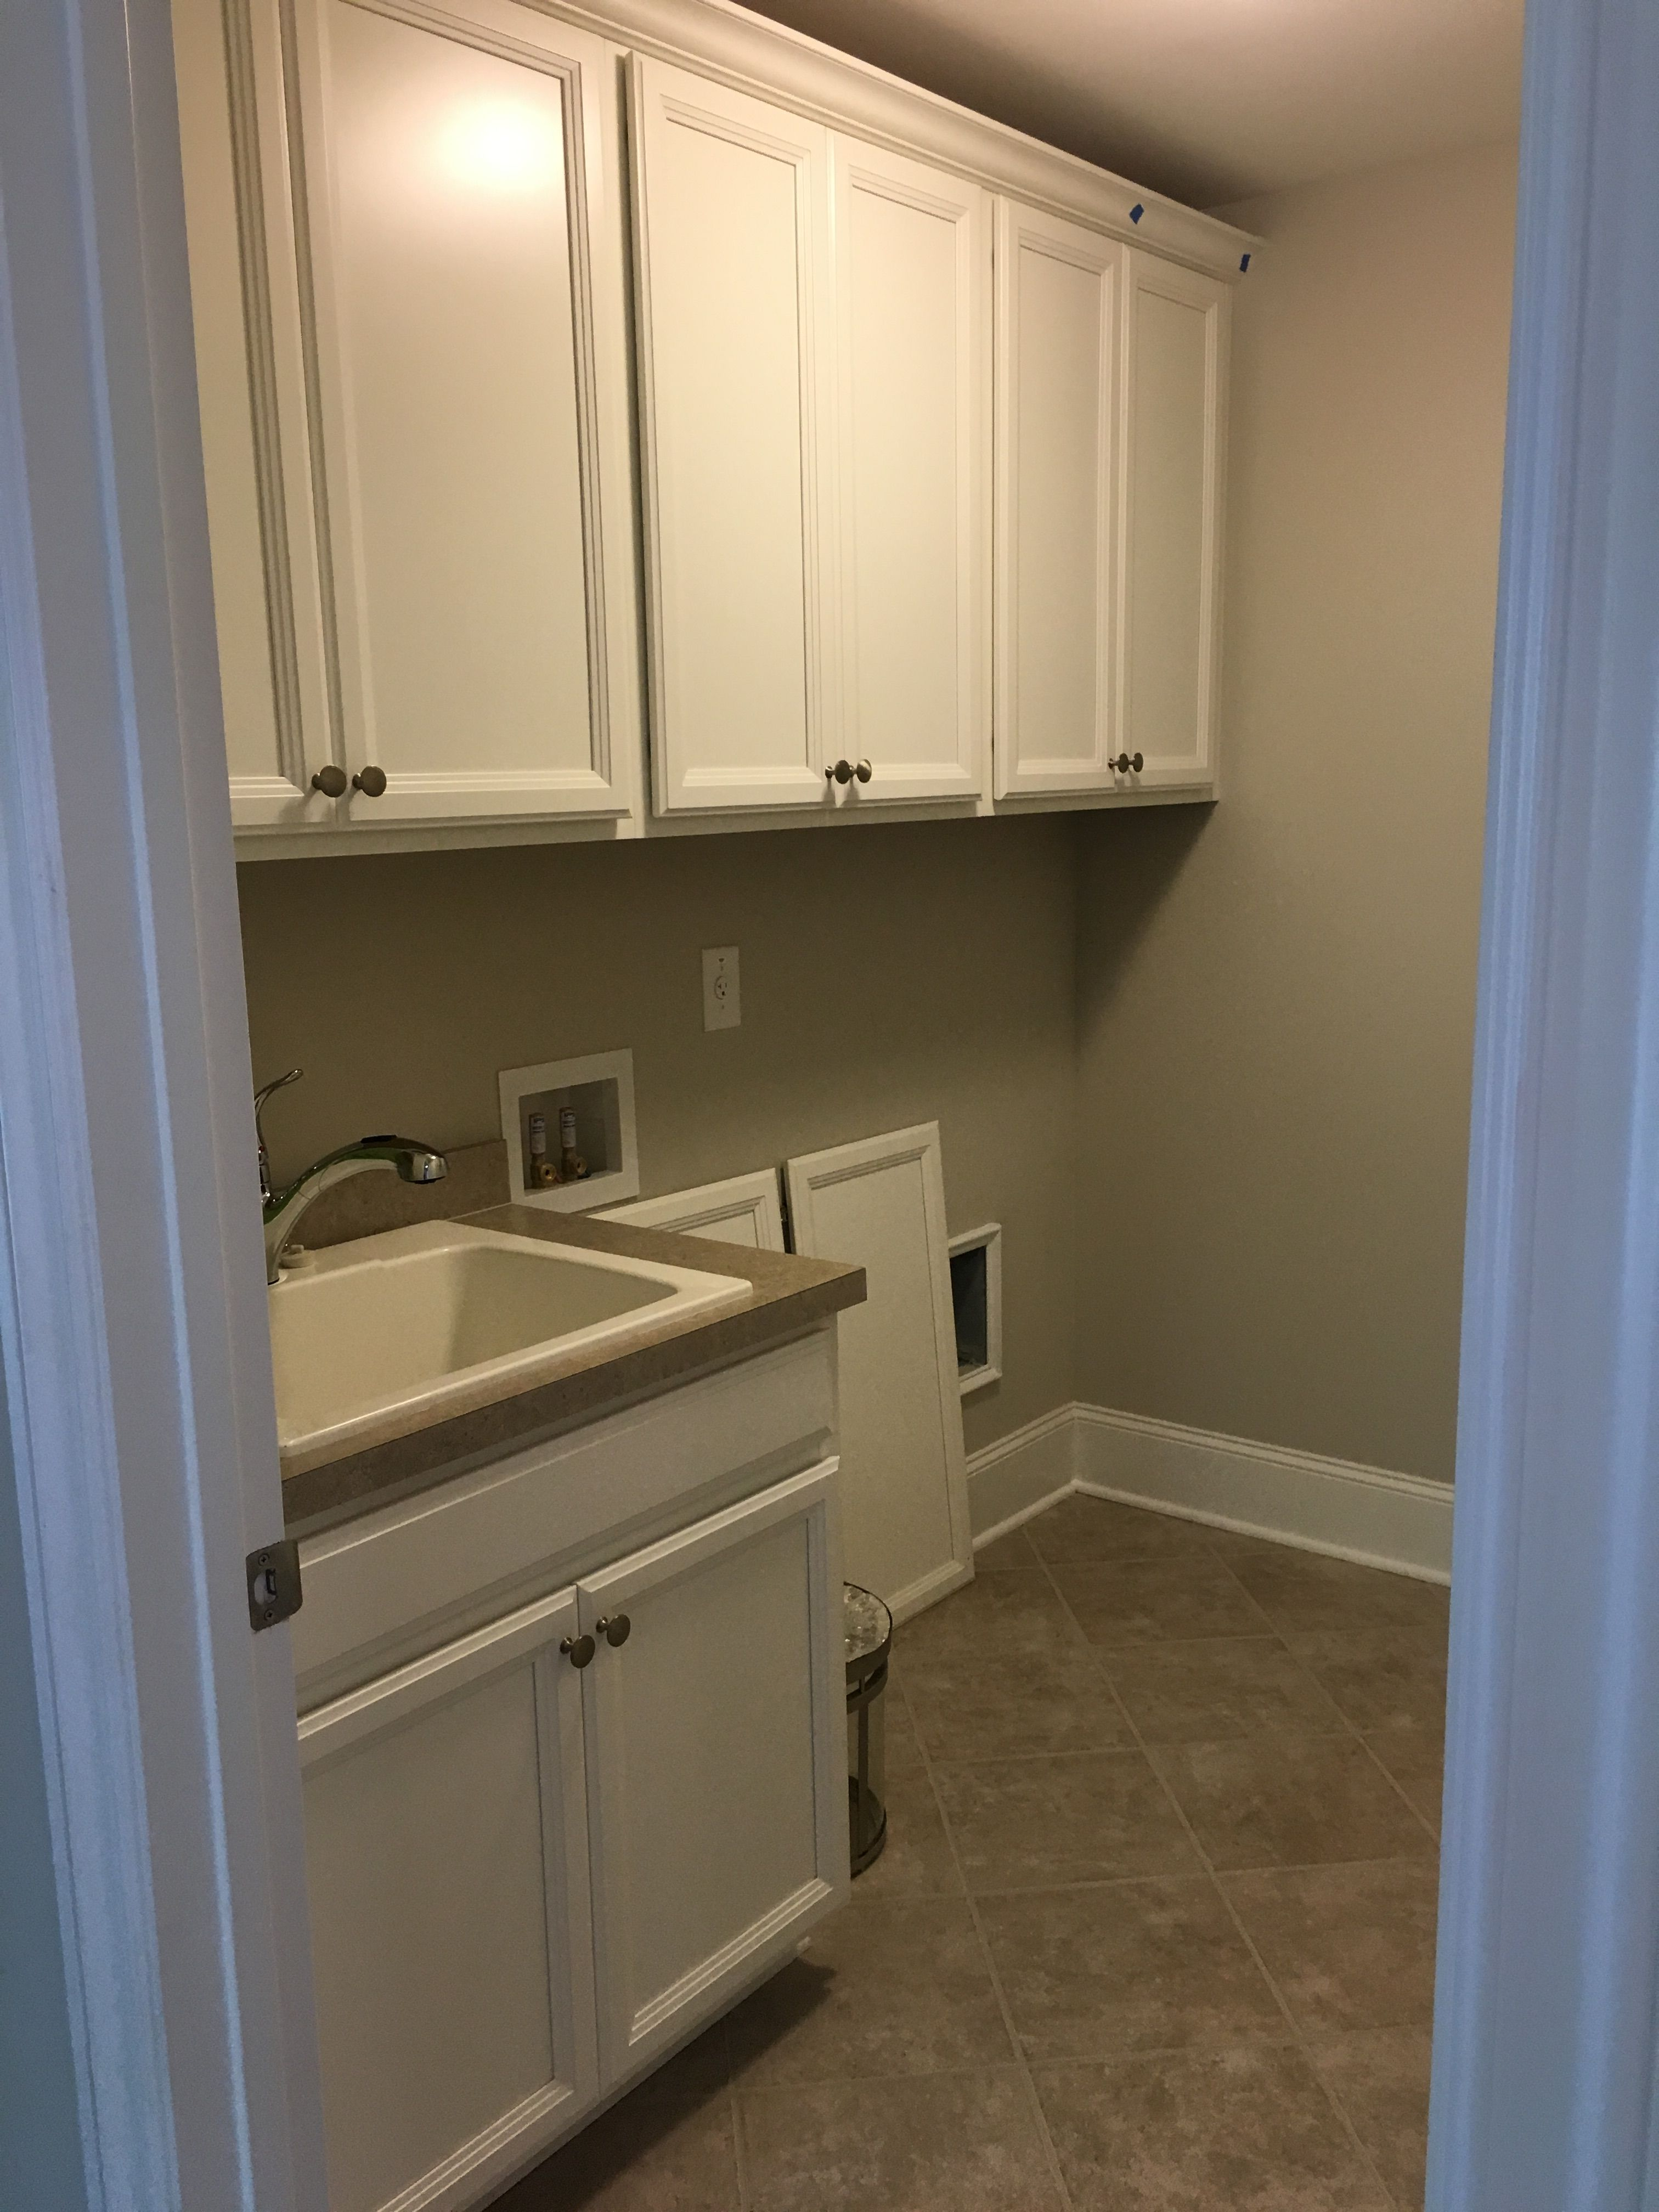 Laundry Room With Standard Base Cabinet Upgrade Sink And